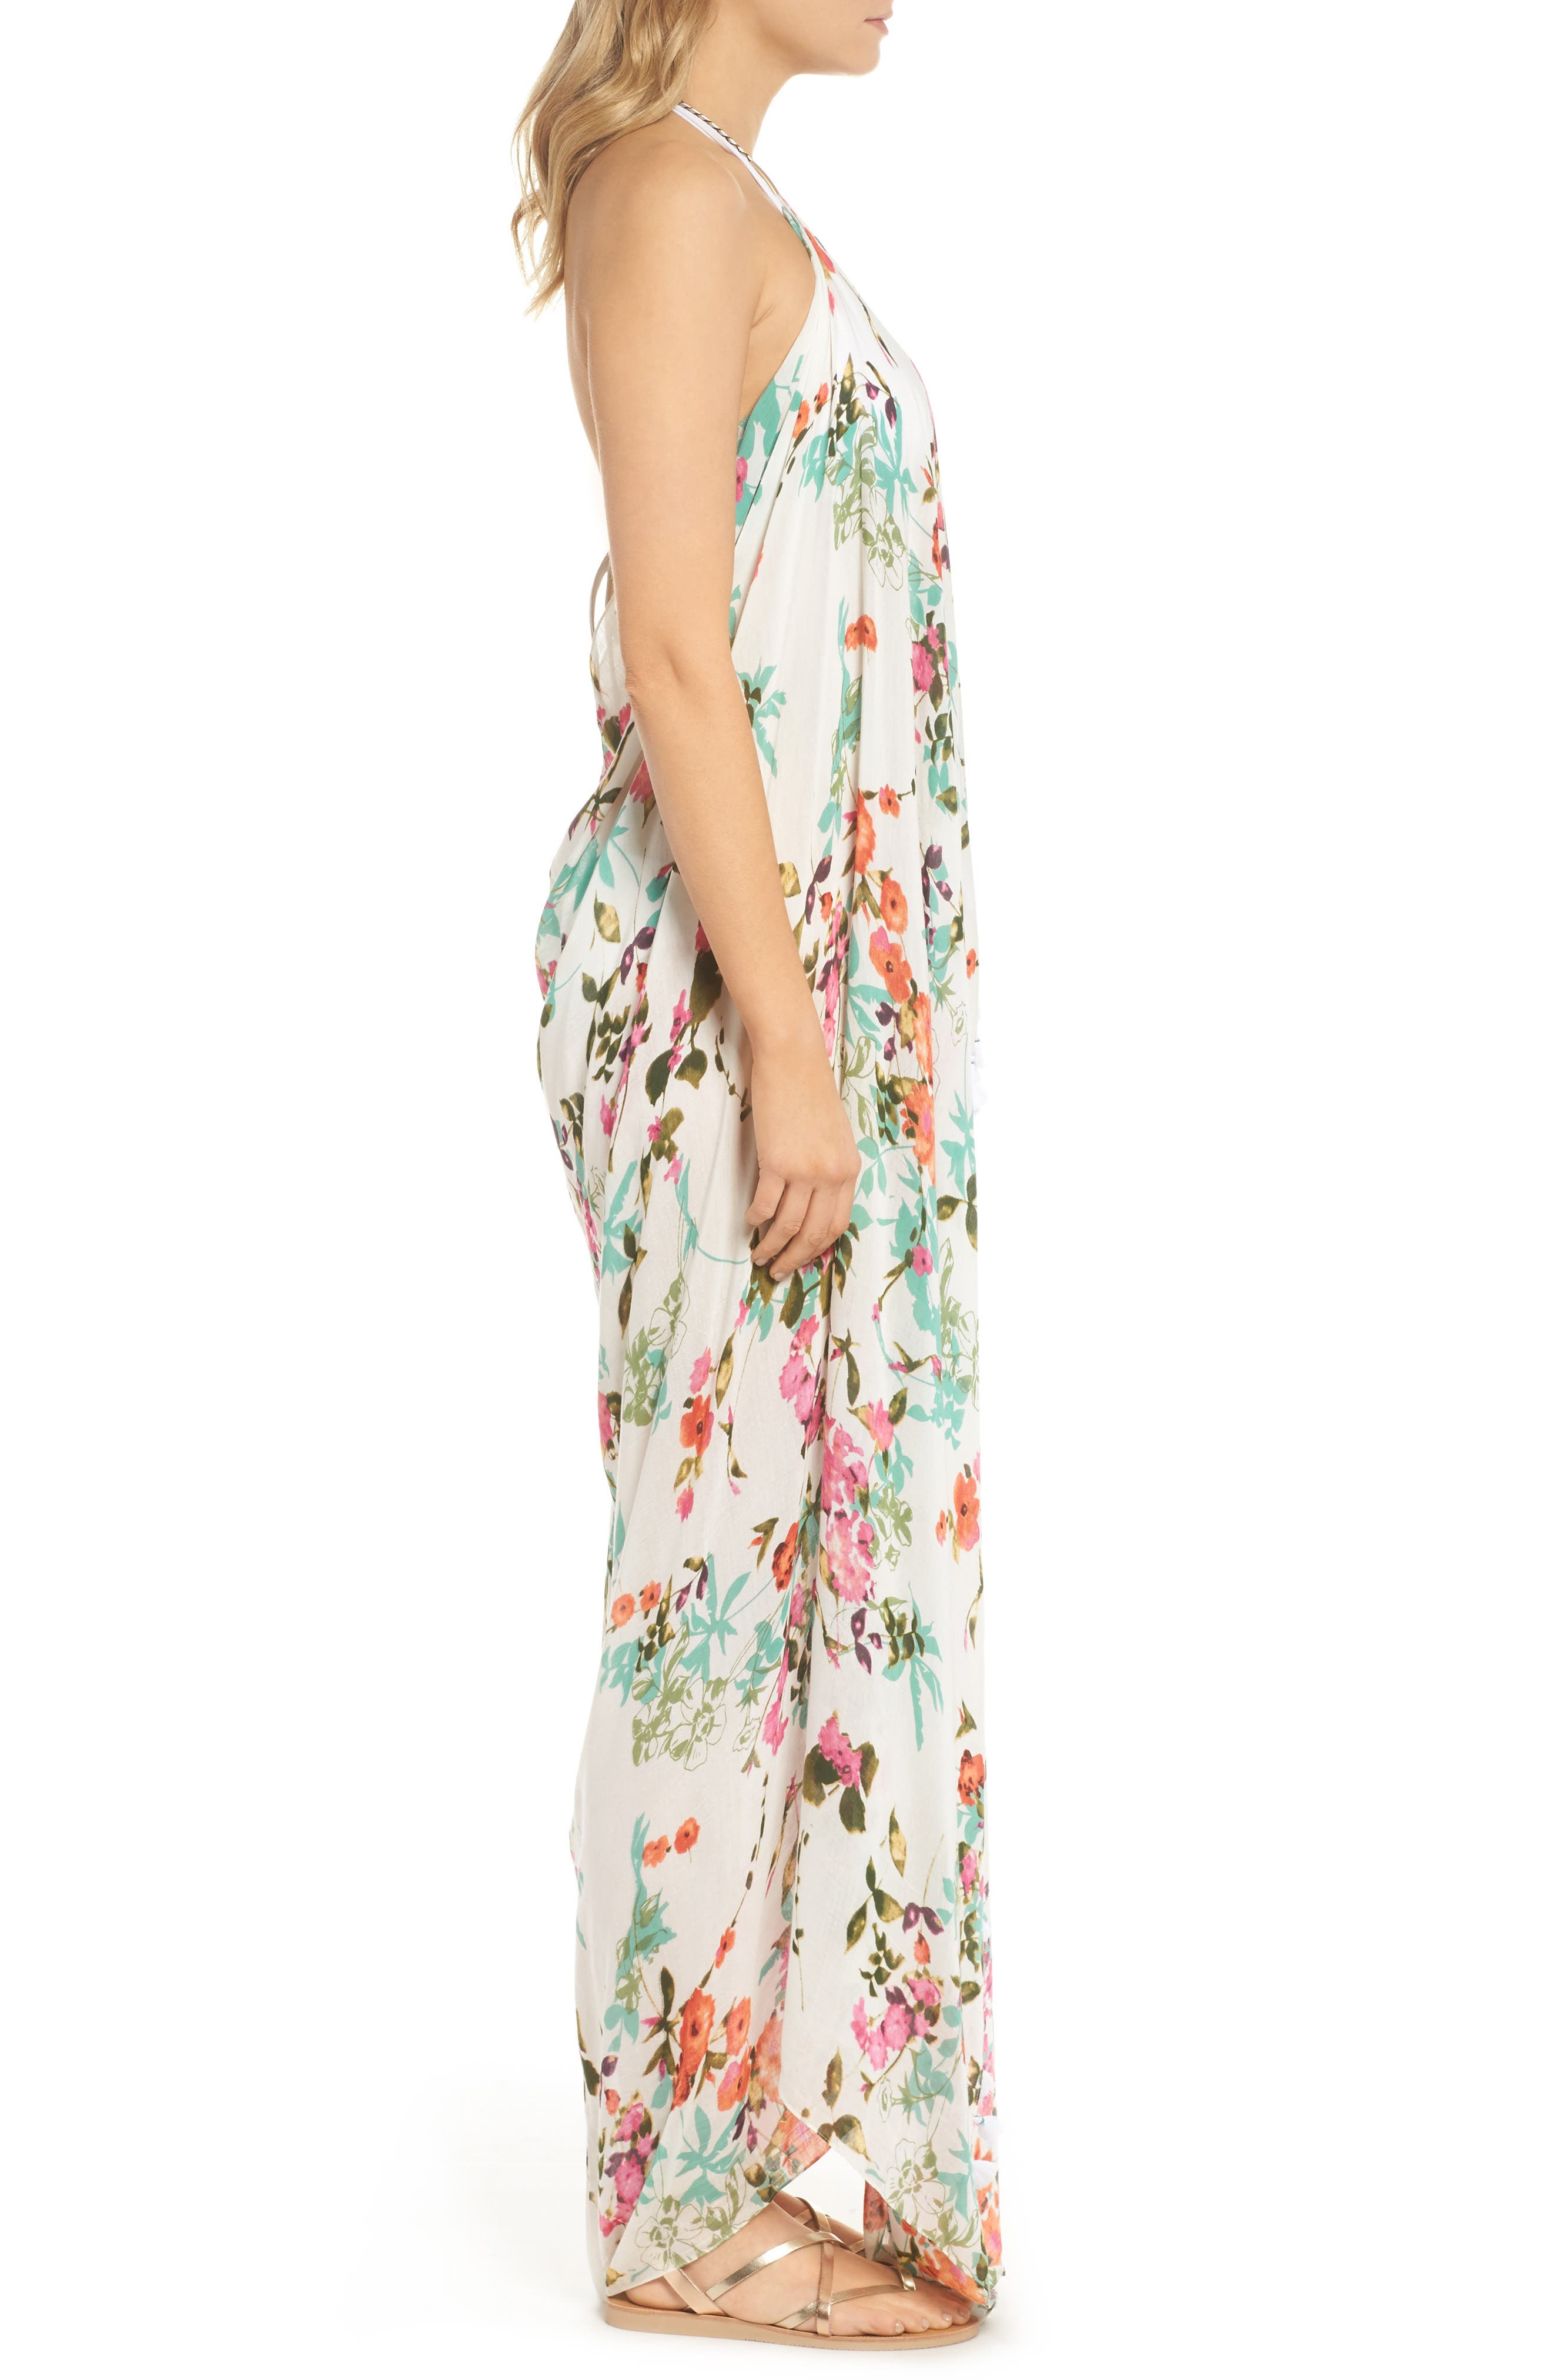 Beach to Street Cover-Up Dress,                             Alternate thumbnail 3, color,                             900